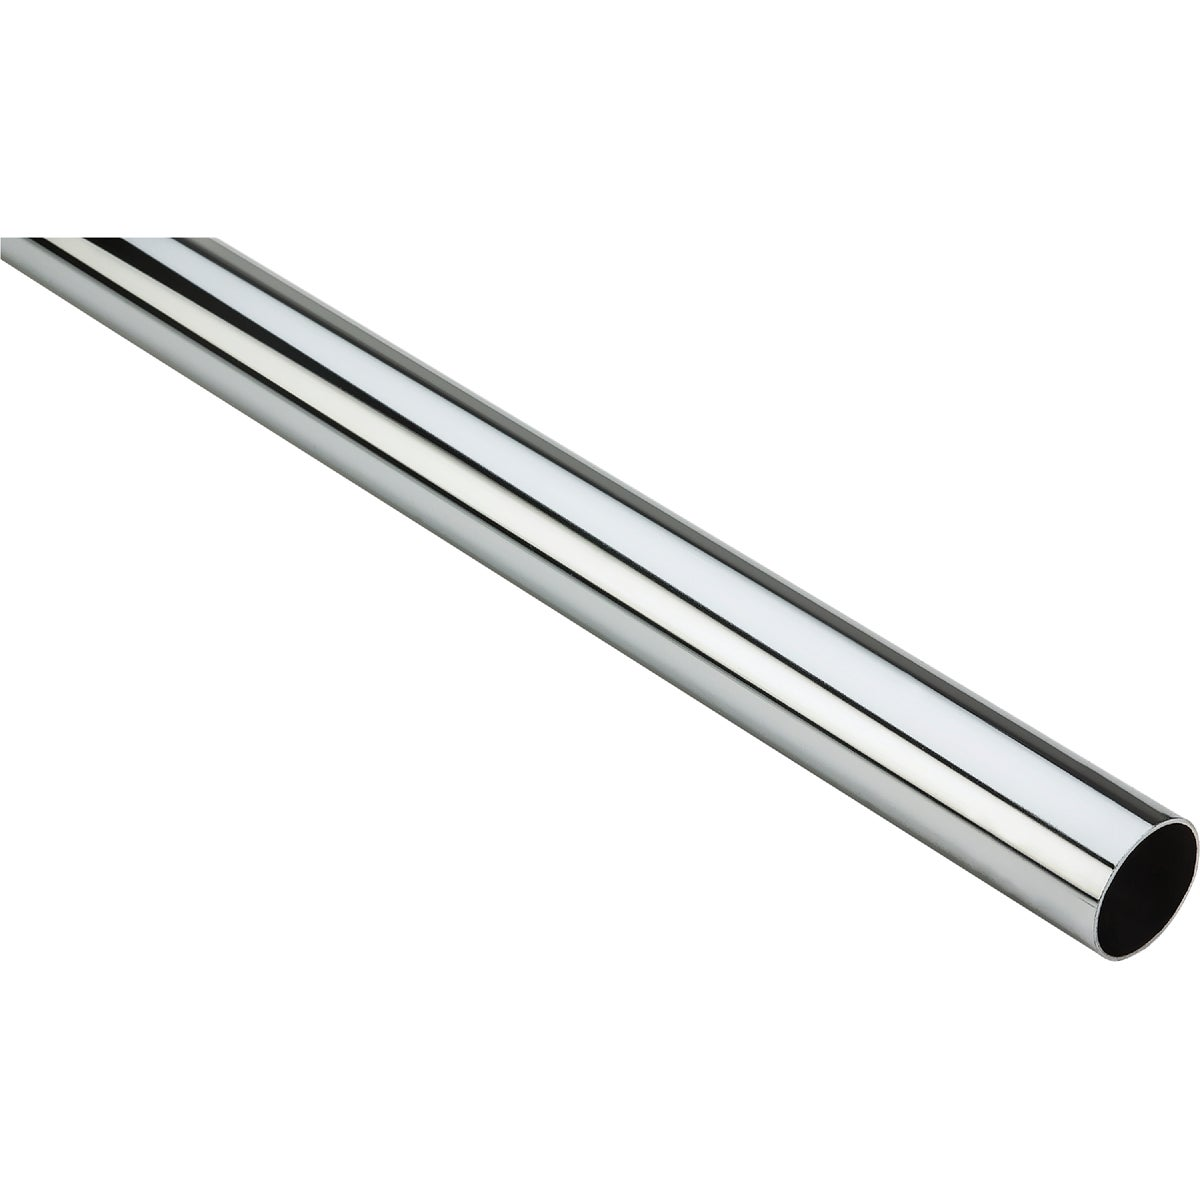 6' CHROME CLOSET ROD - N820076 by National Mfg Co